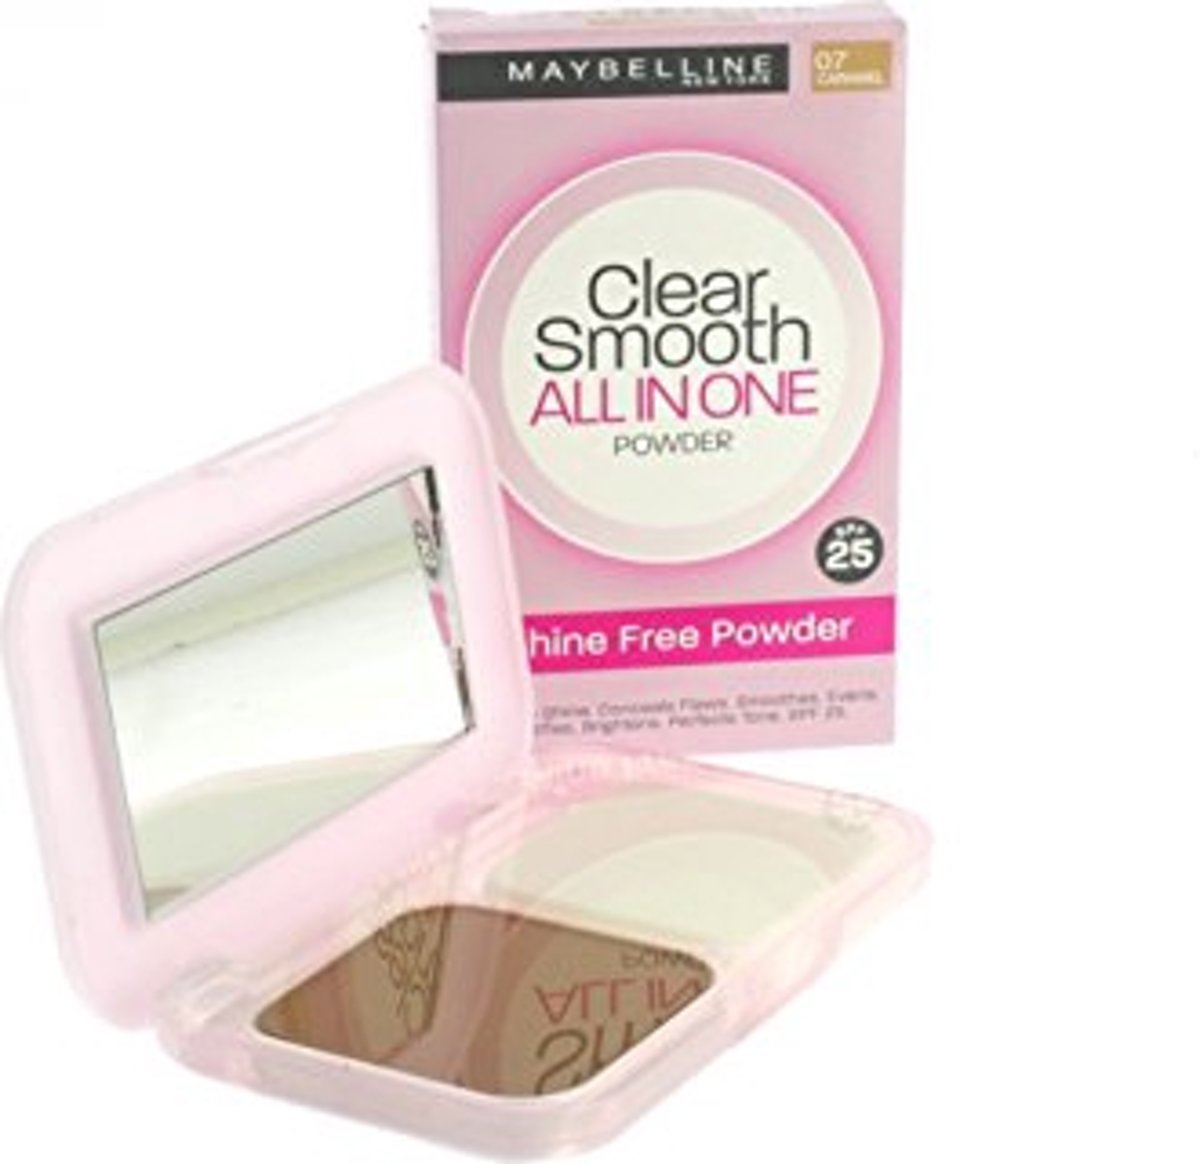 Maybeline, clear smooth - all in one powder - 07 caramel - spf 25